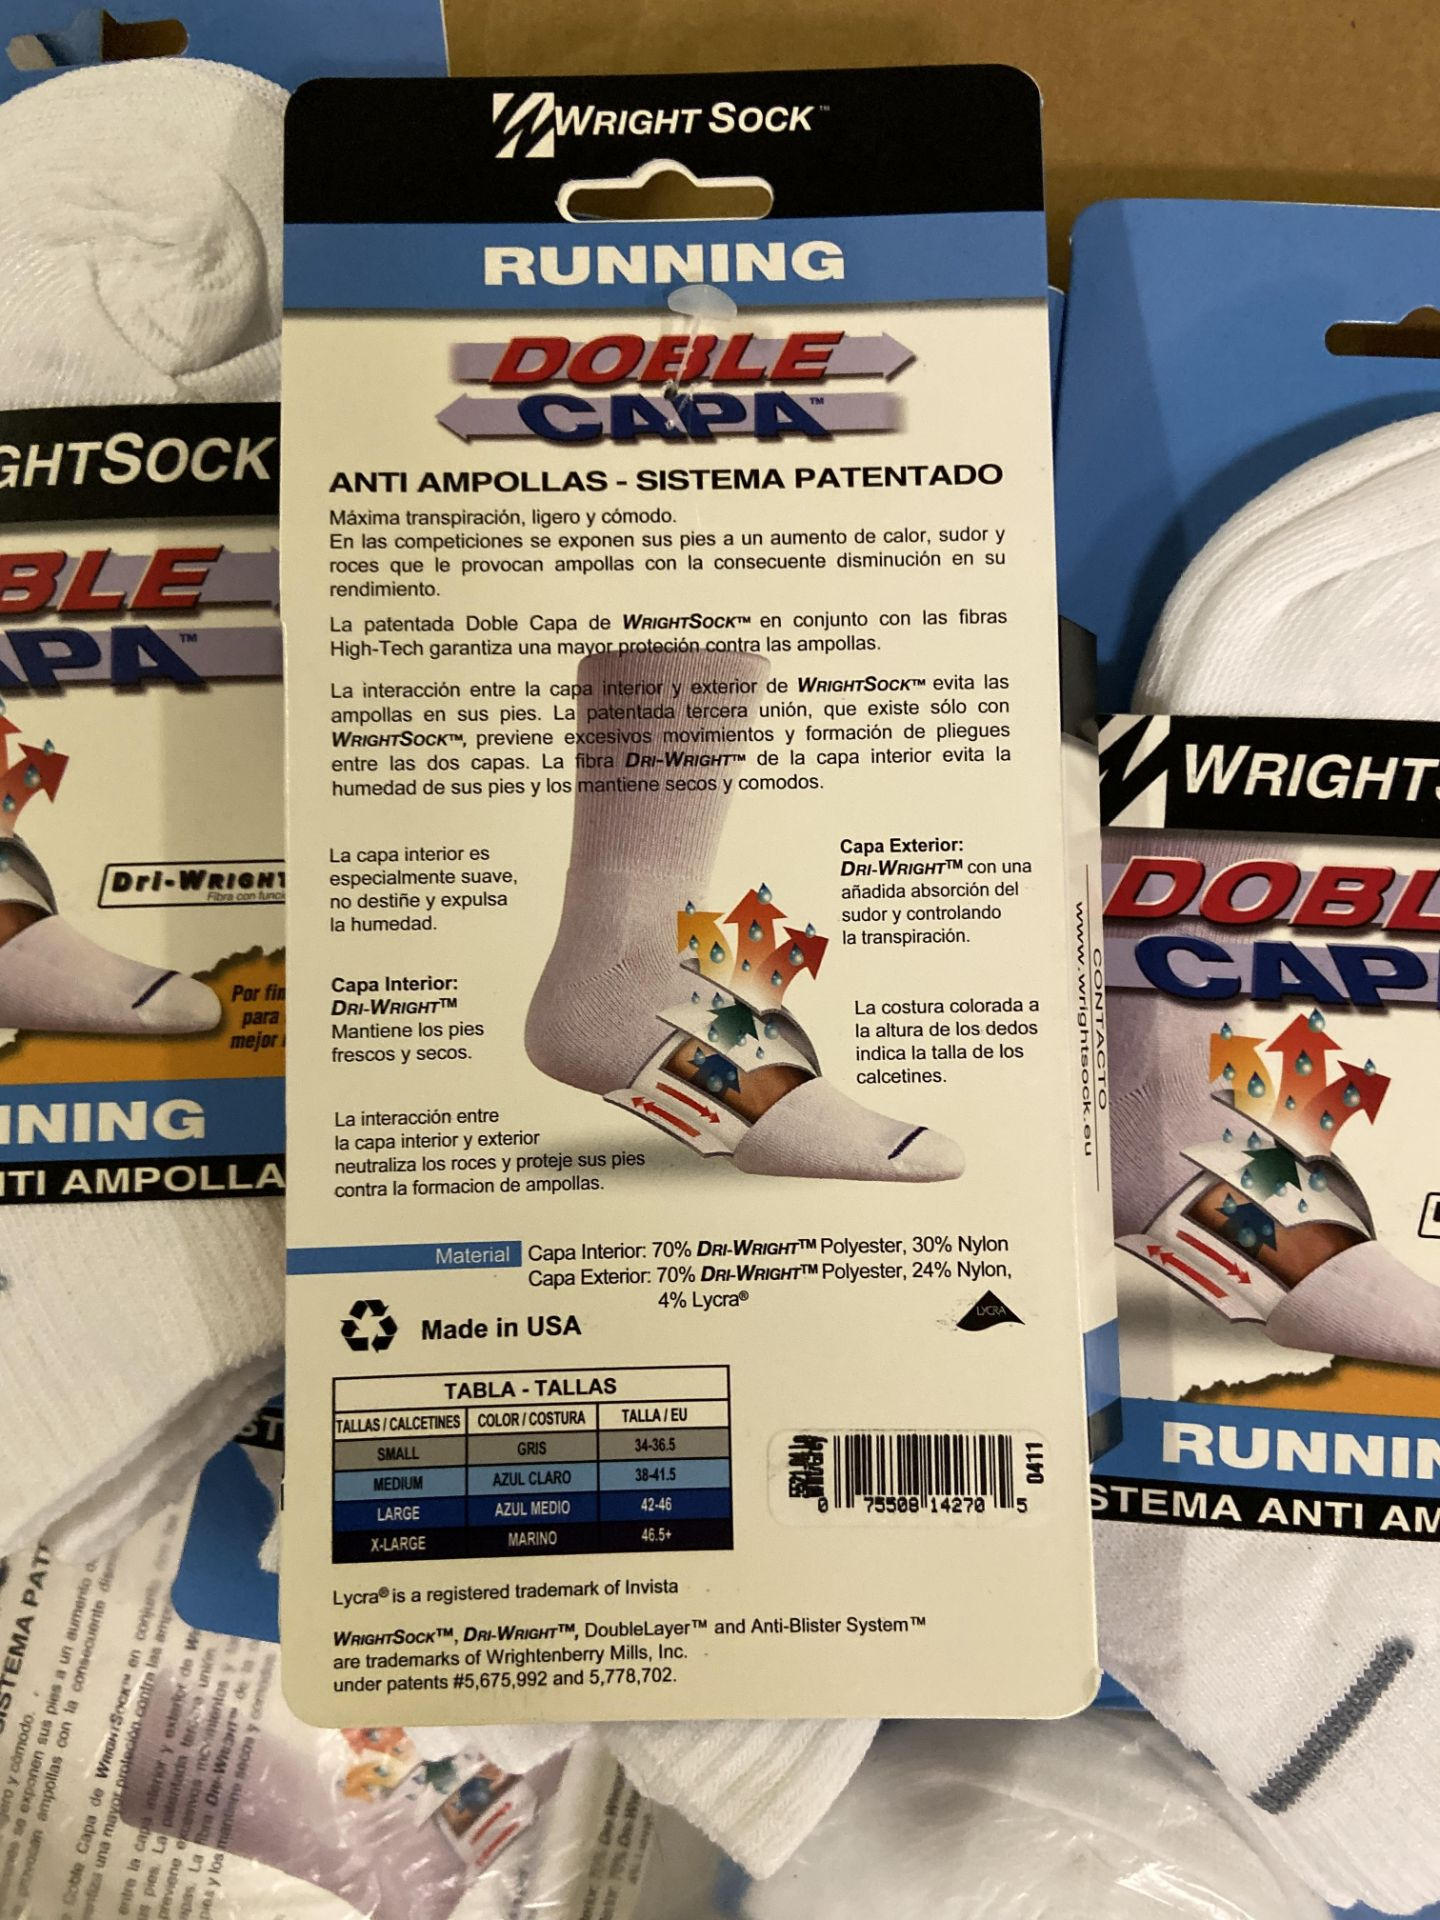 500+ packs of New Socks, Wrightsock Running and Coolmesh, Double Layer, White w. Various Stripes - Image 7 of 7